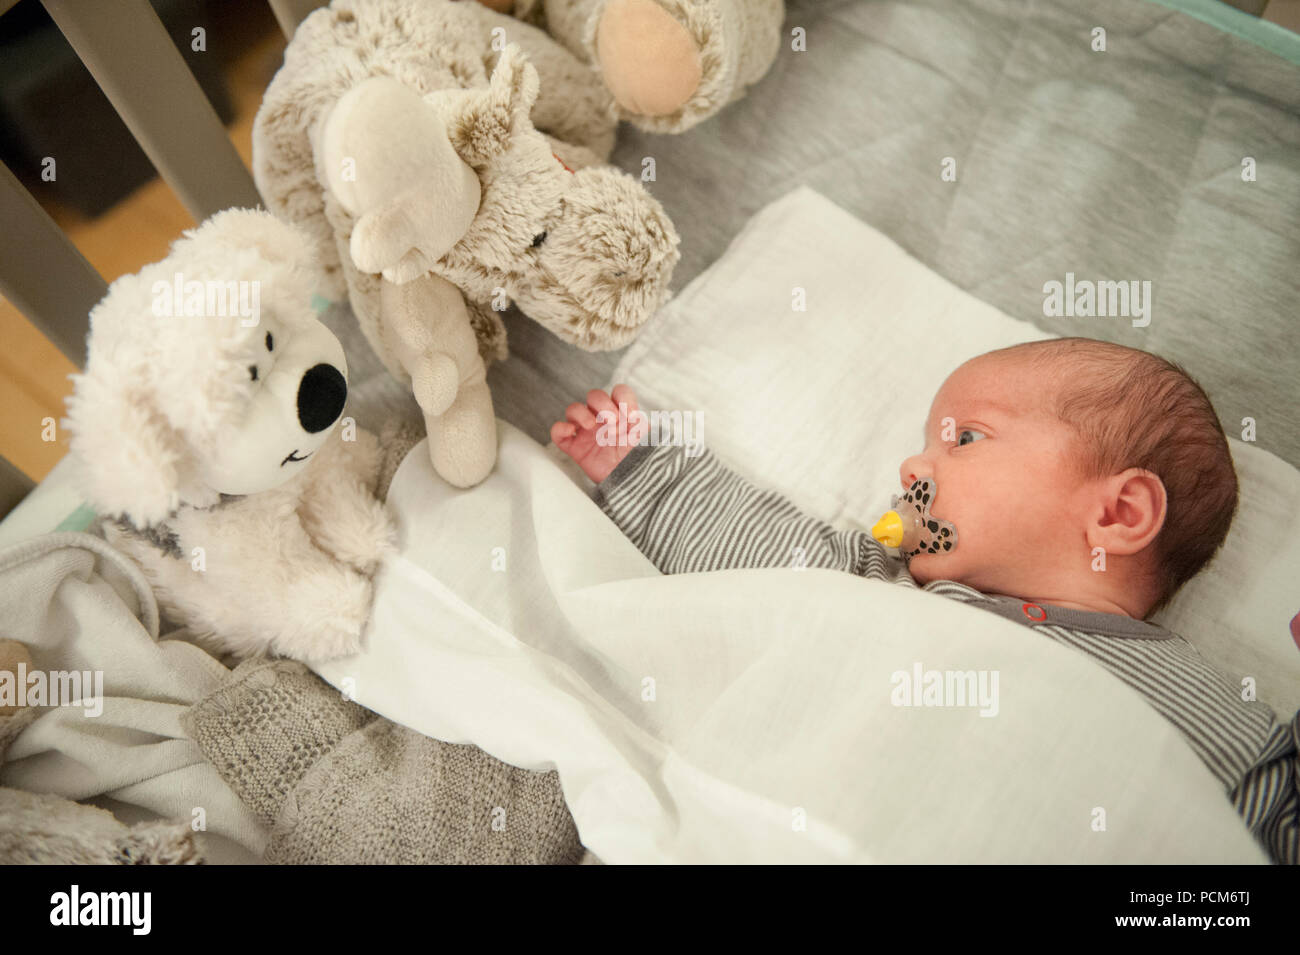 Baby Newborn Teddy Illustration Picture Of A Newborn Baby Boy Surround By Toys